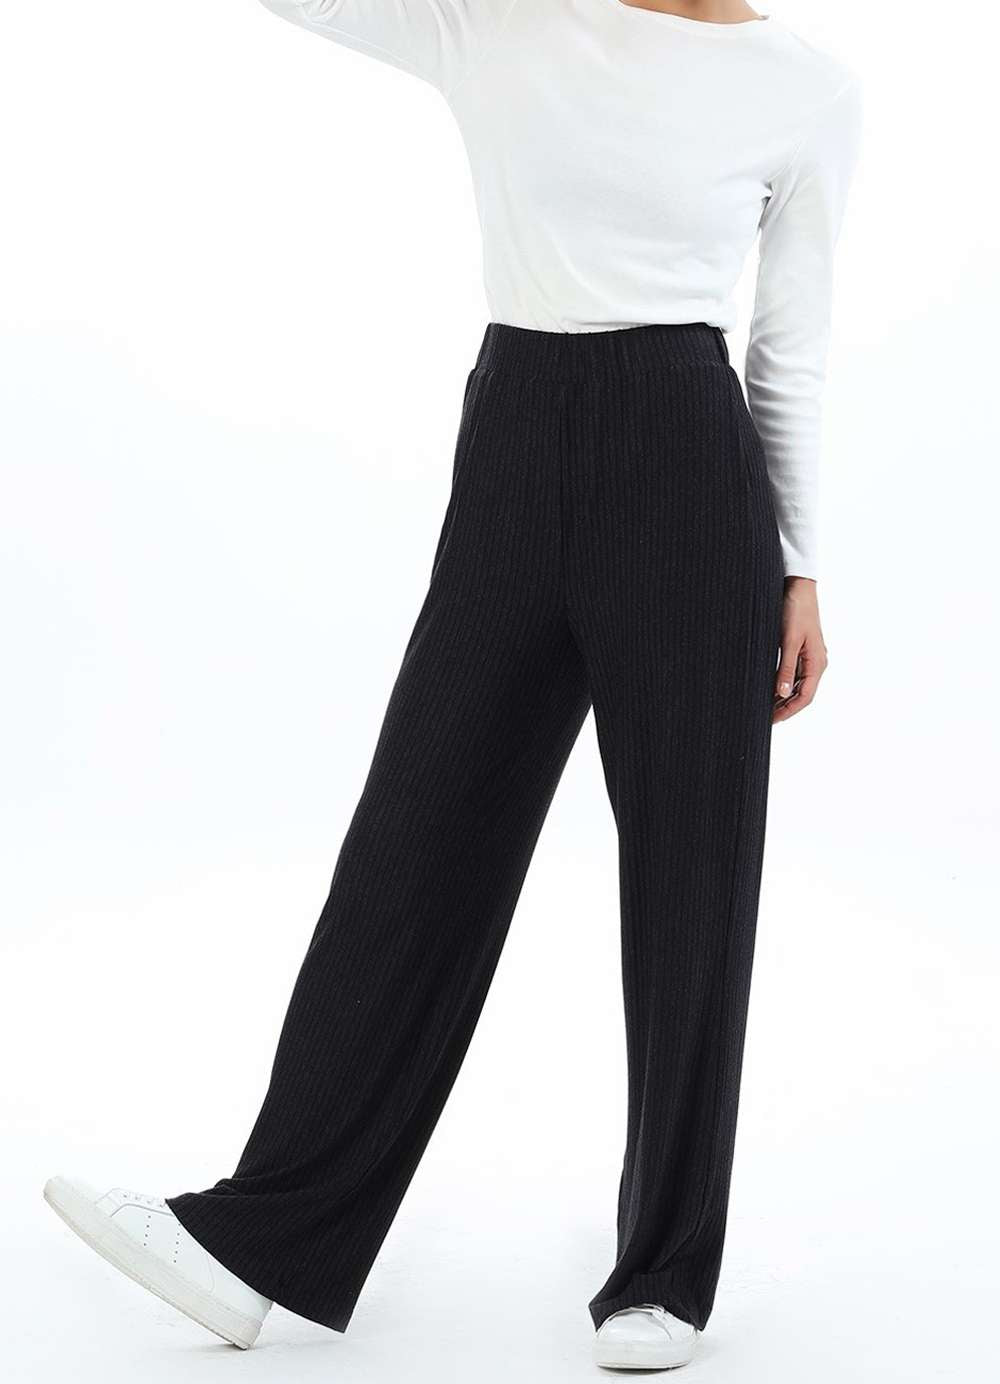 MODGREY KNITTED PANTS